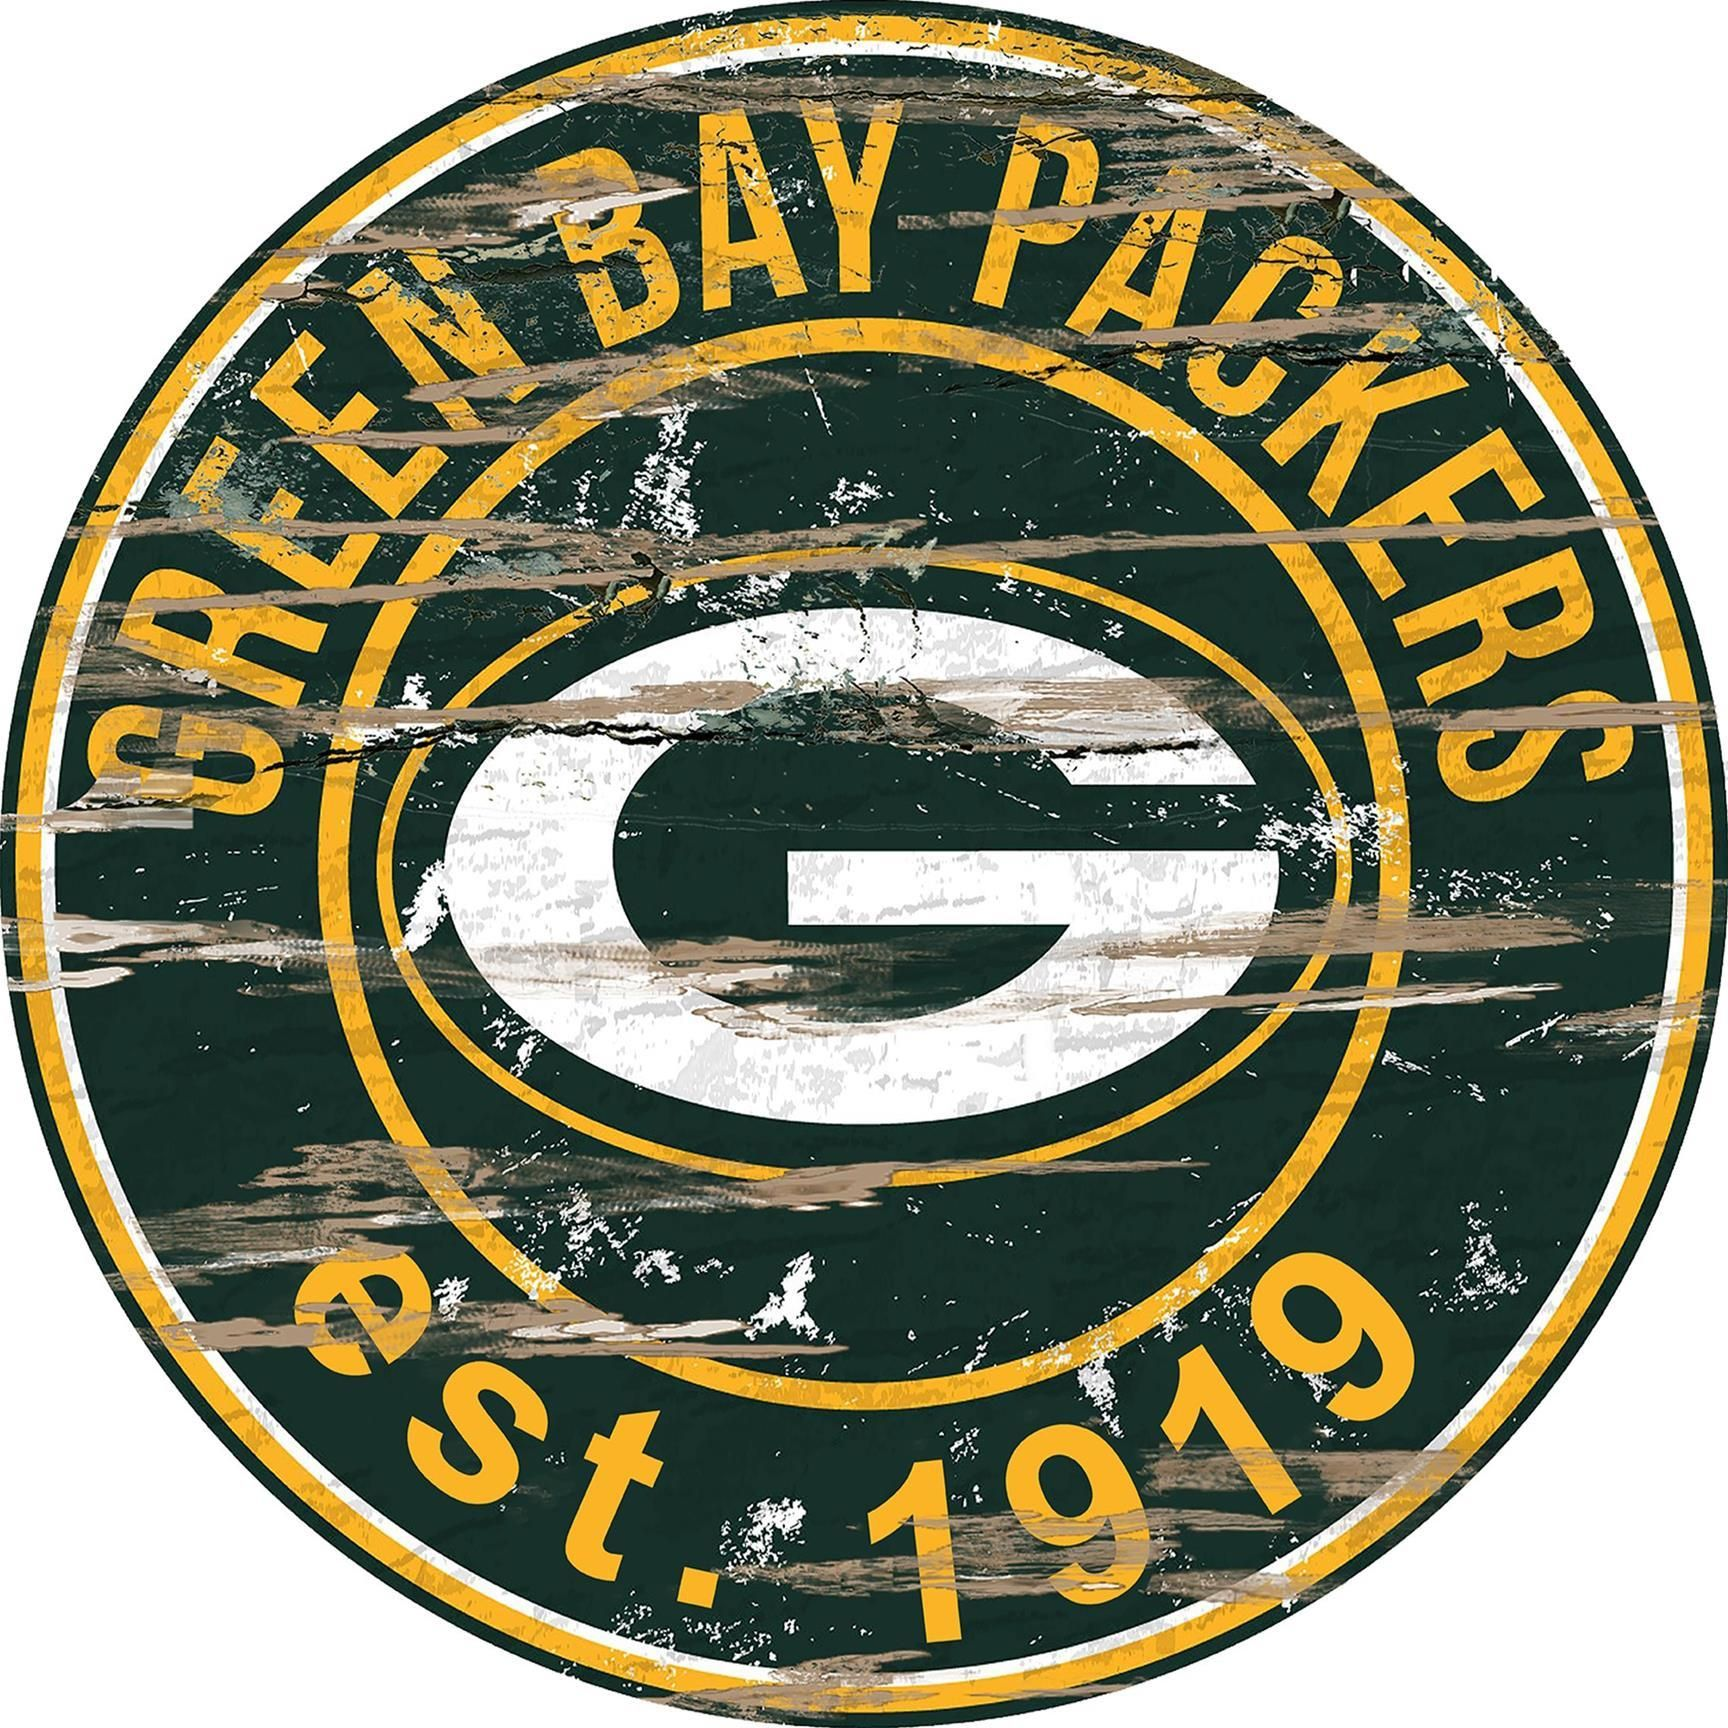 Green Bay Packers Distressed 24 Round Sign Nfl Green Bay Green Bay Packers Green Bay Packers Fans